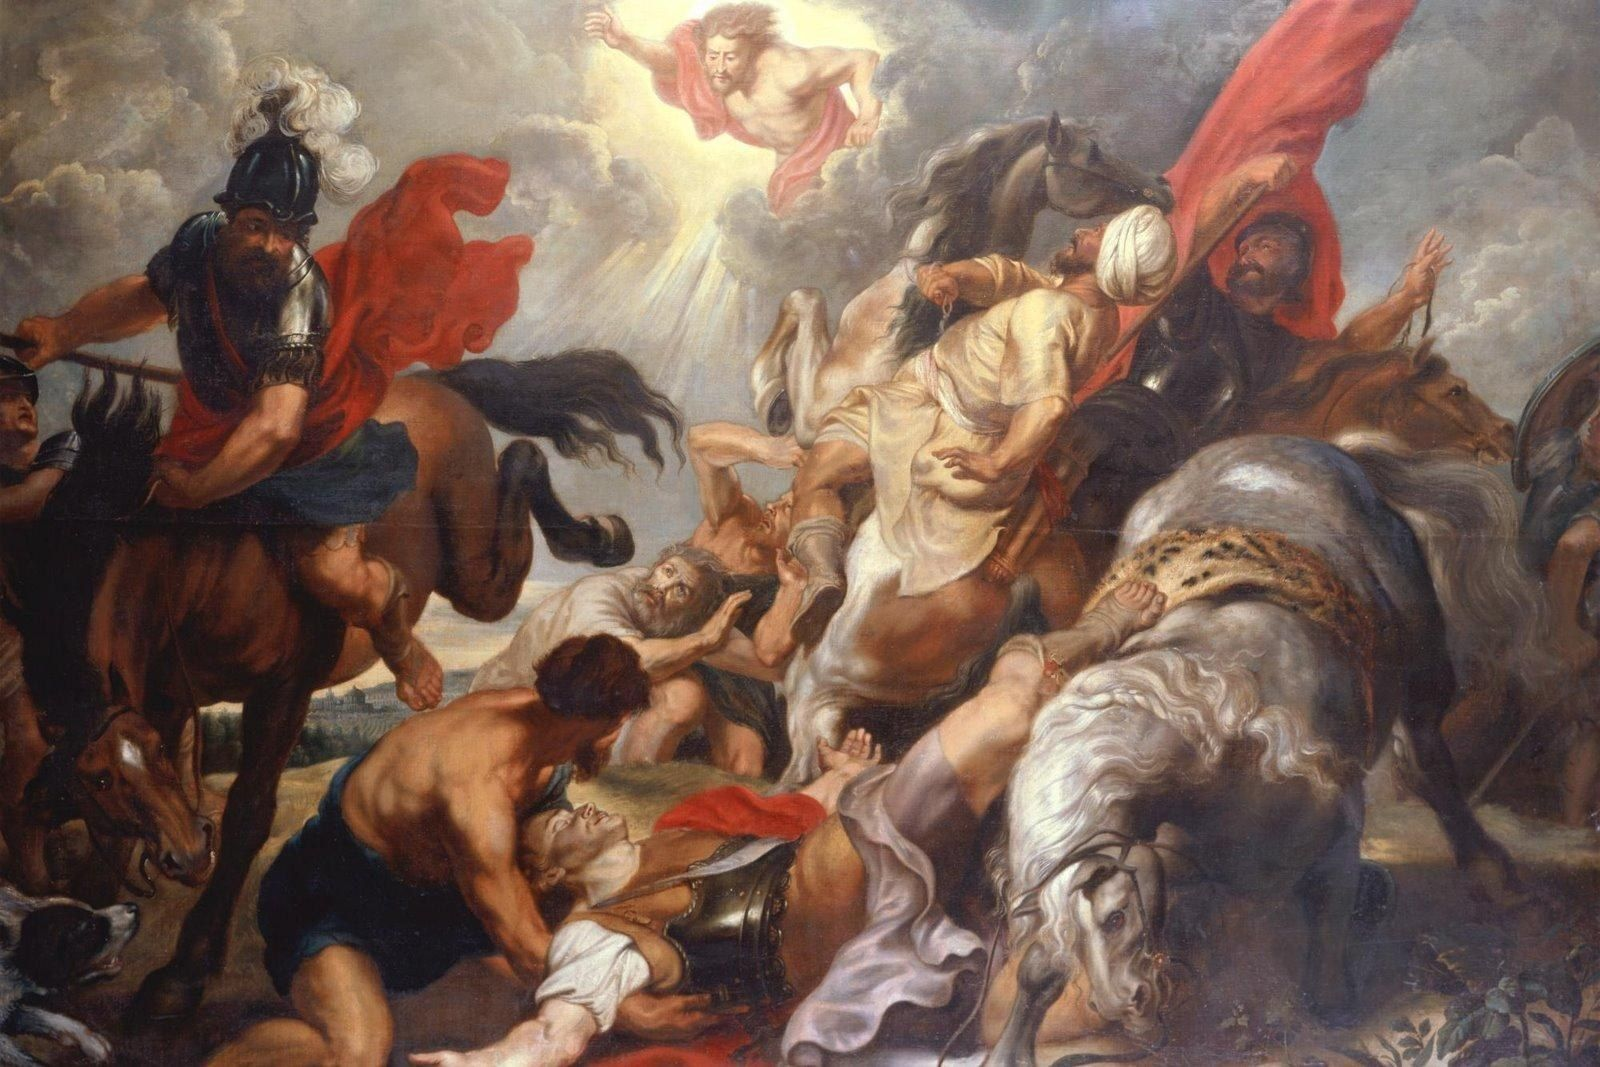 Peter Paul Rubens The Conversion of St. Paul